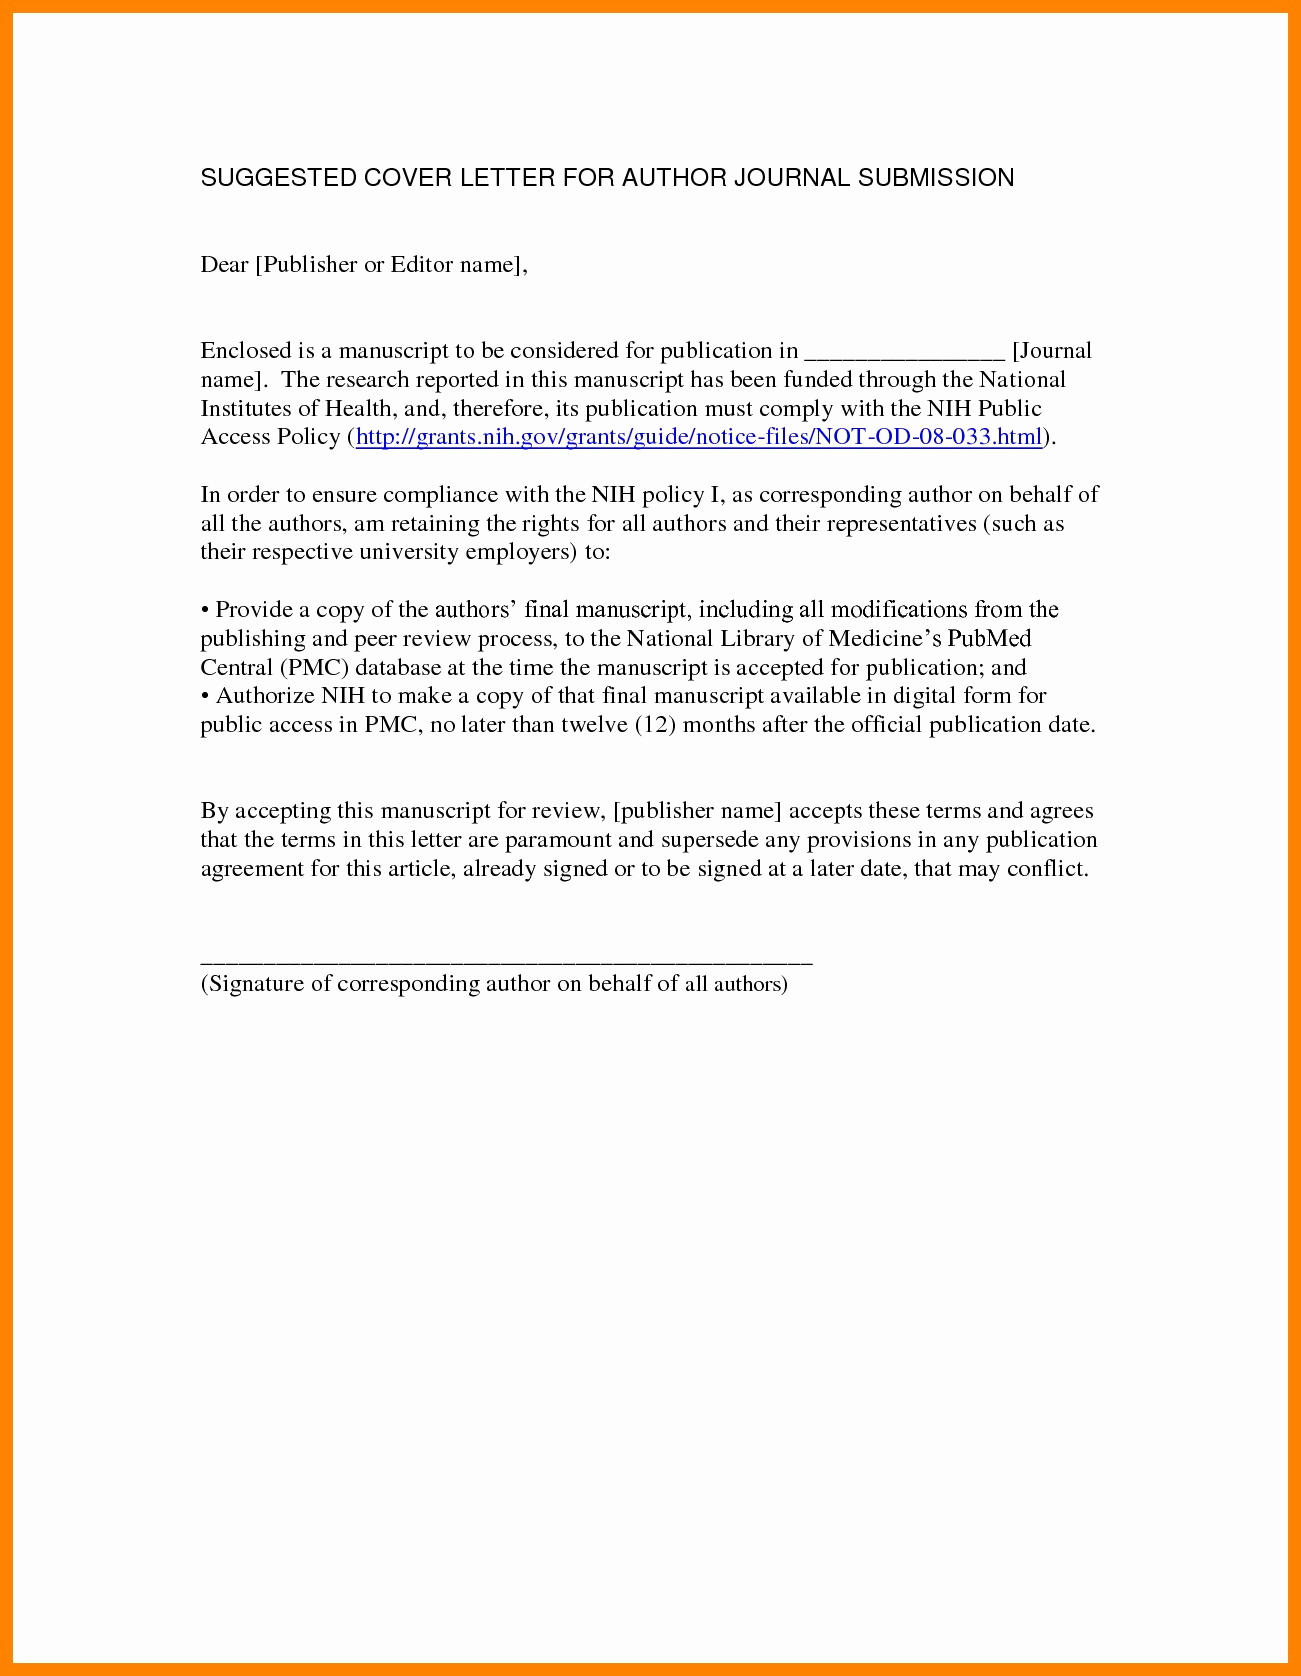 Template for College Recommendation Letter - Lovely Scholarship Re Mendation Letter Template